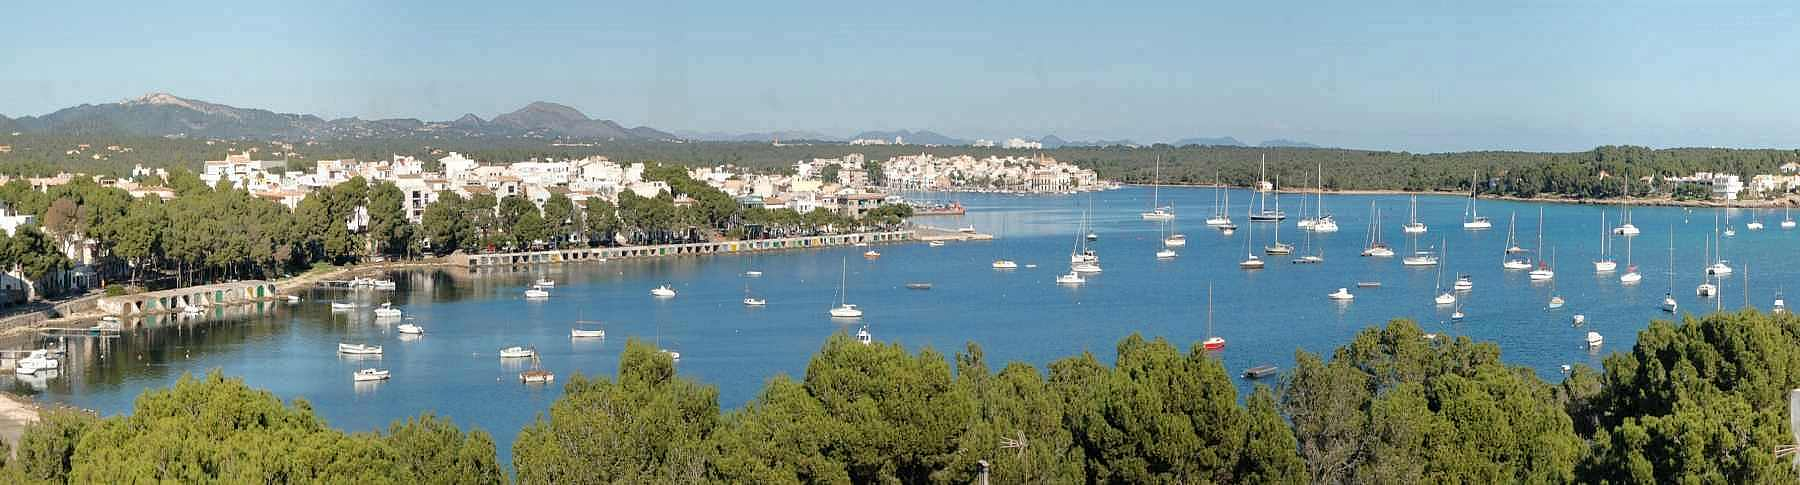 Portocolom with harbor and successful holidays